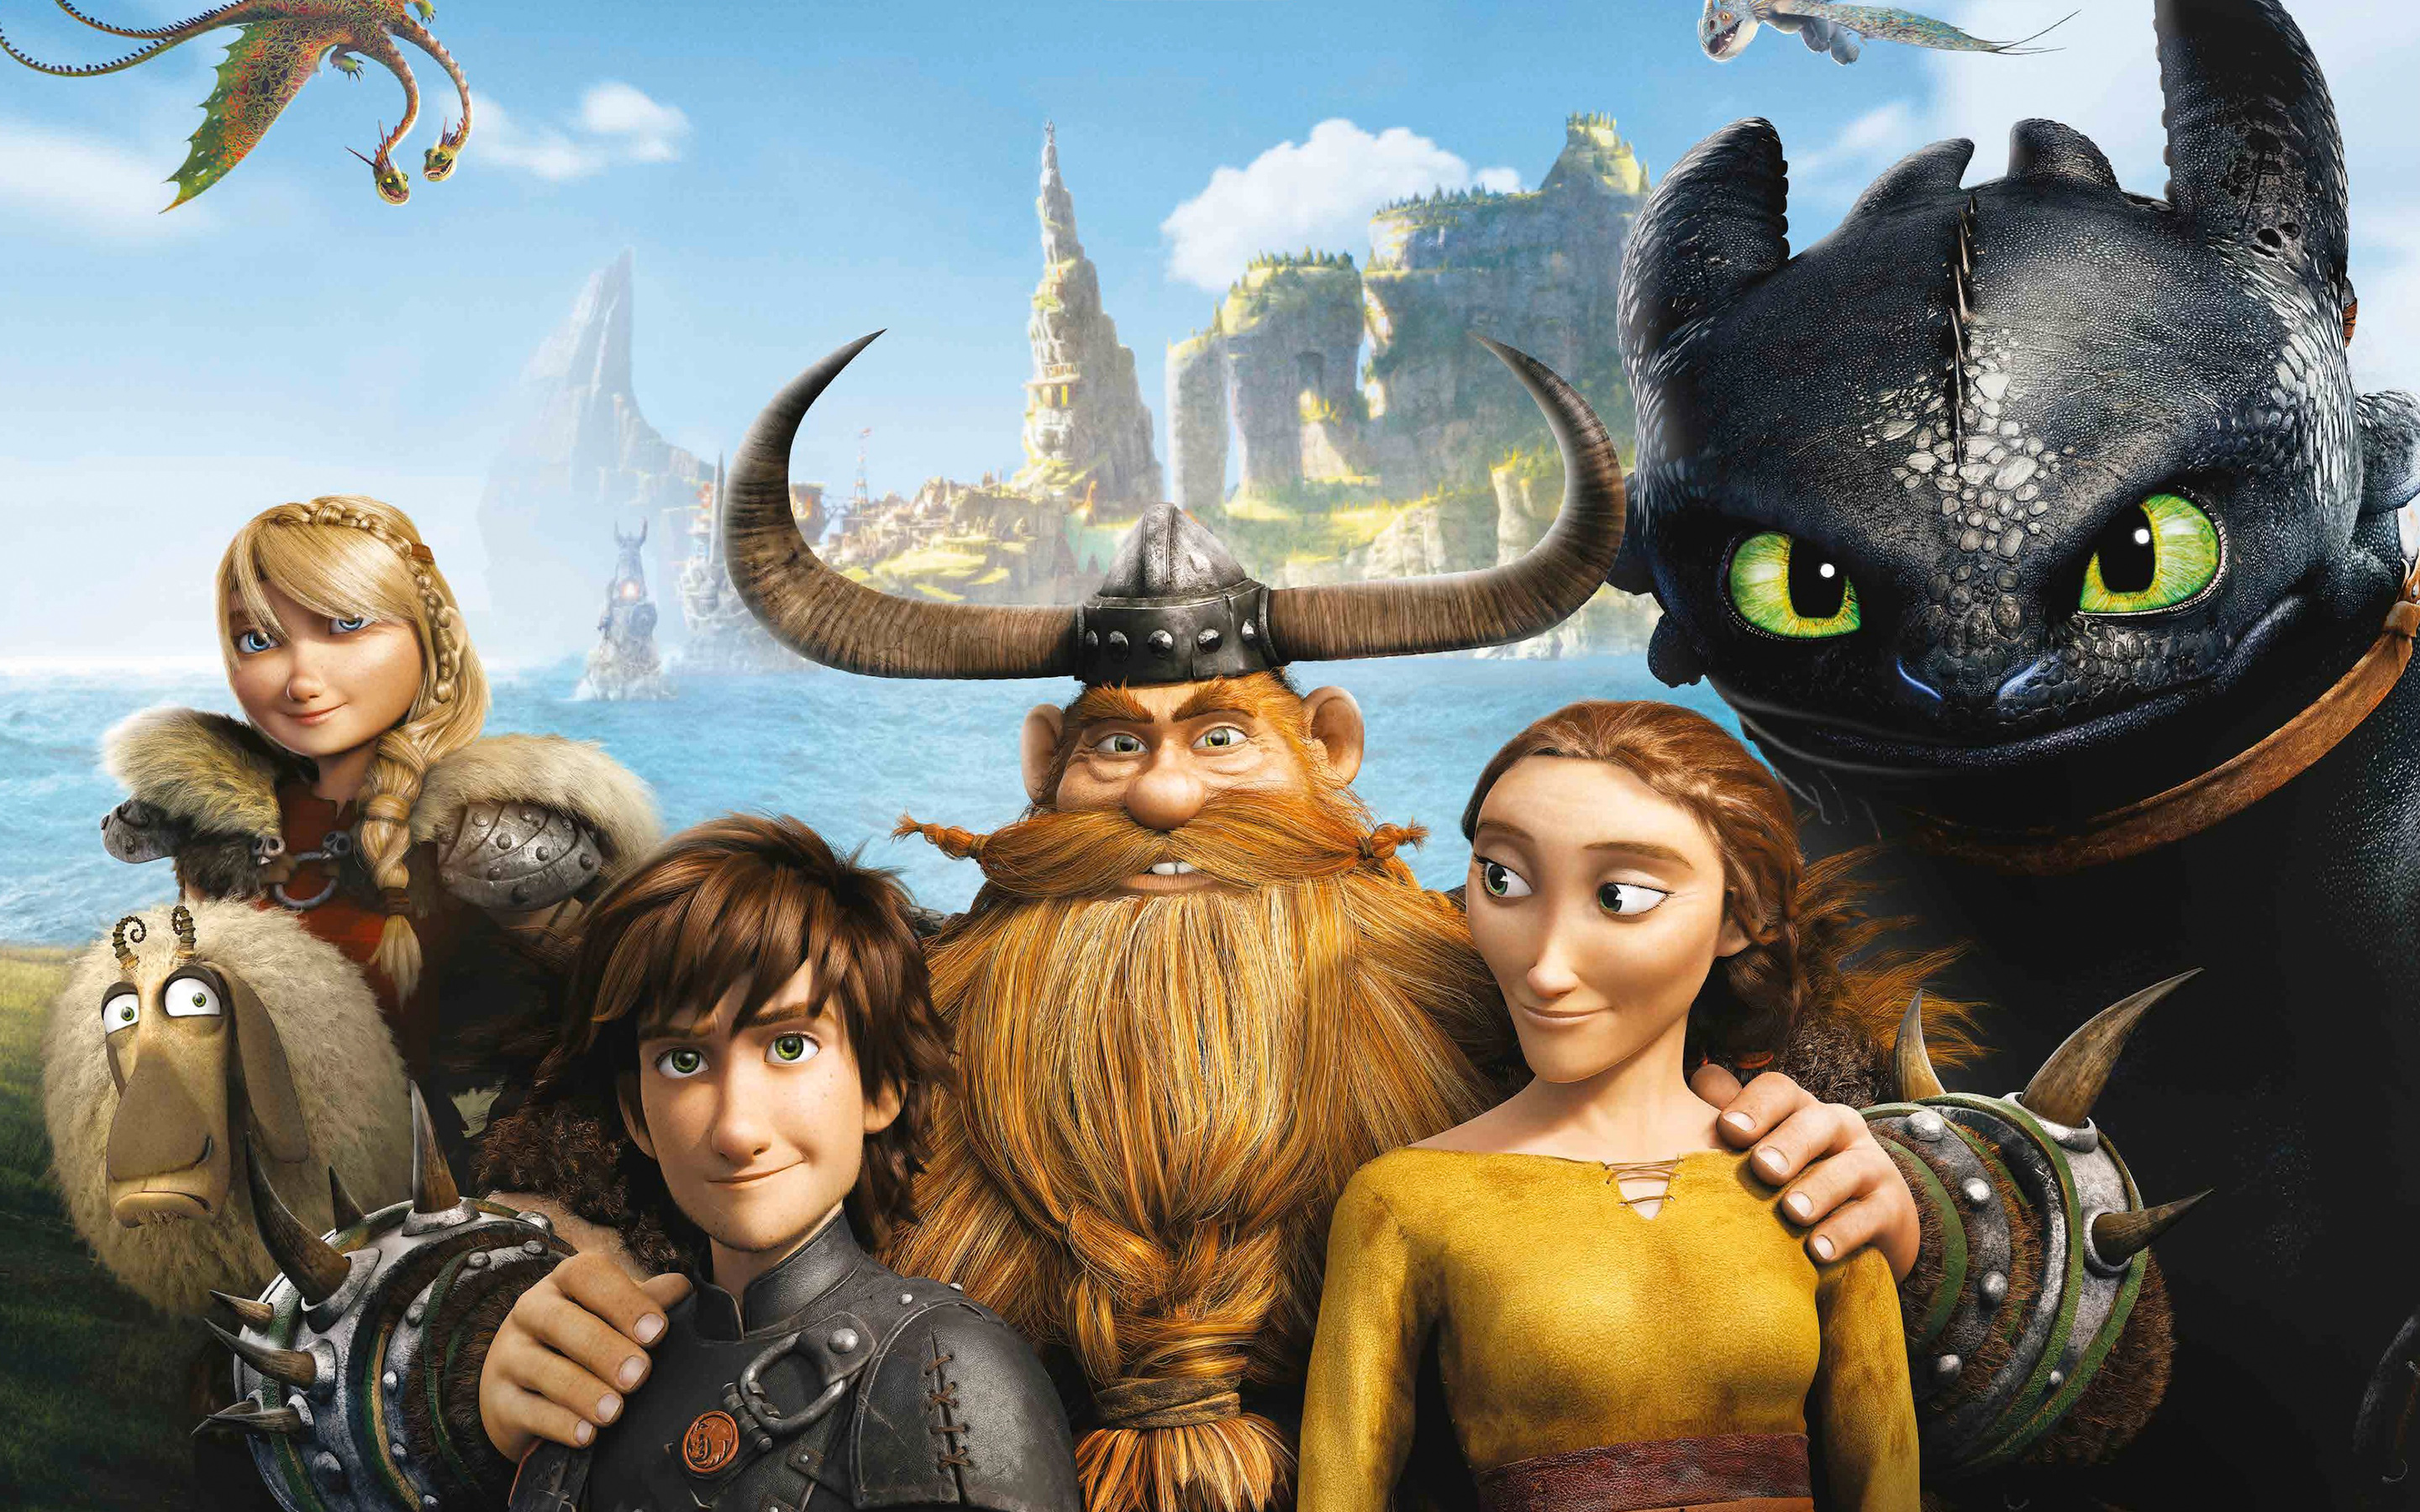 Ejderhan nasl eitirsin 2 how to train your dragon 2 digitrk howtotrainyourdragon2banner wide how to train your dragon 2 ccuart Choice Image